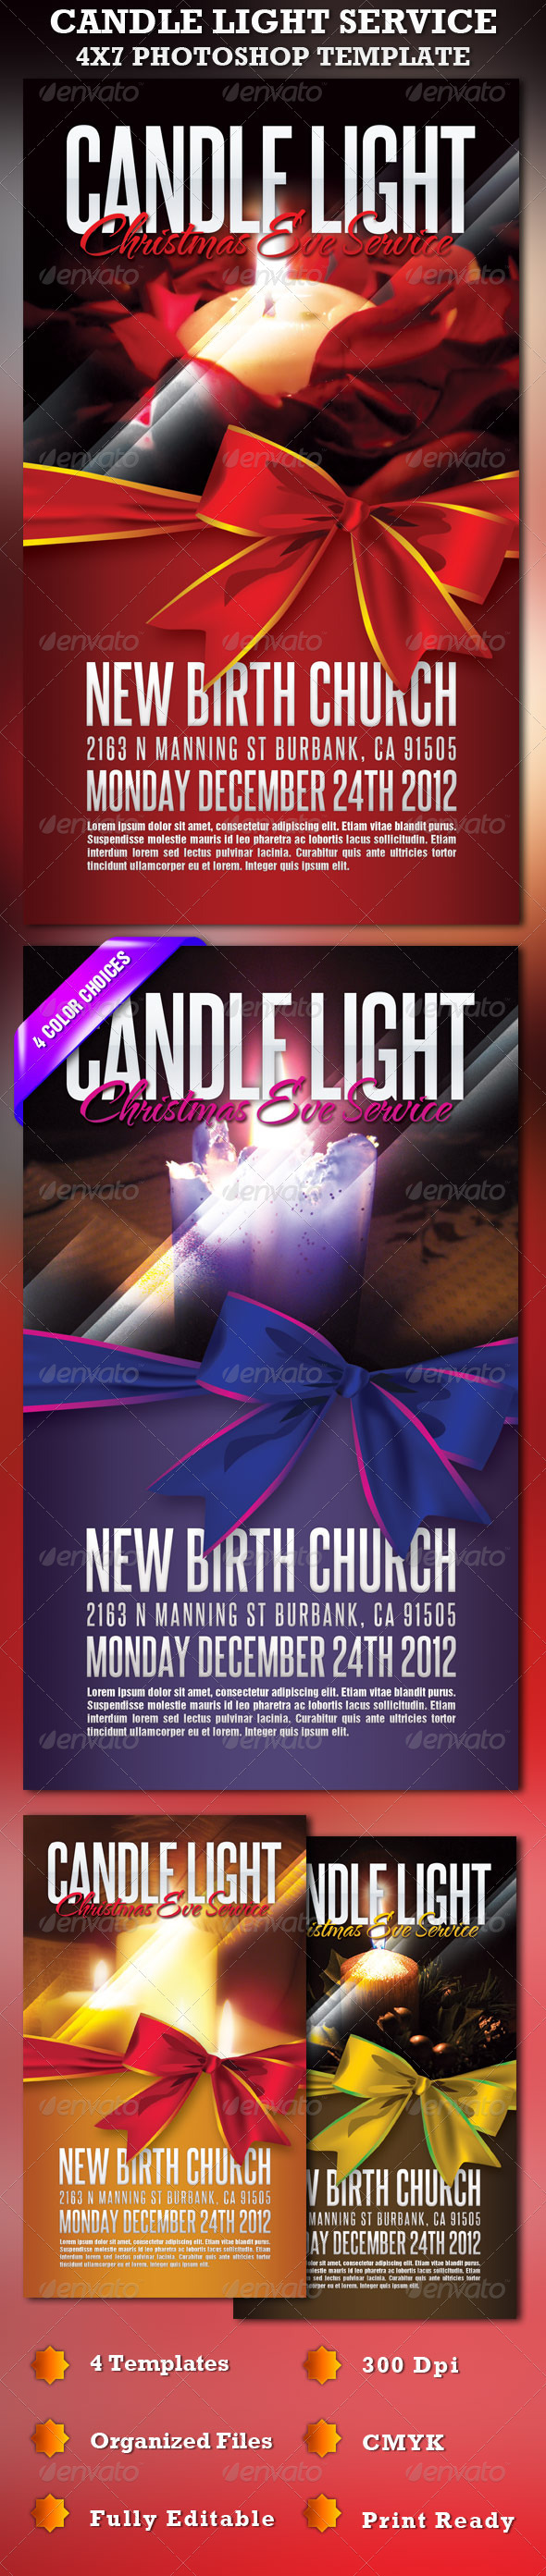 Candle Light Service Church Flyer Template - Church Flyers